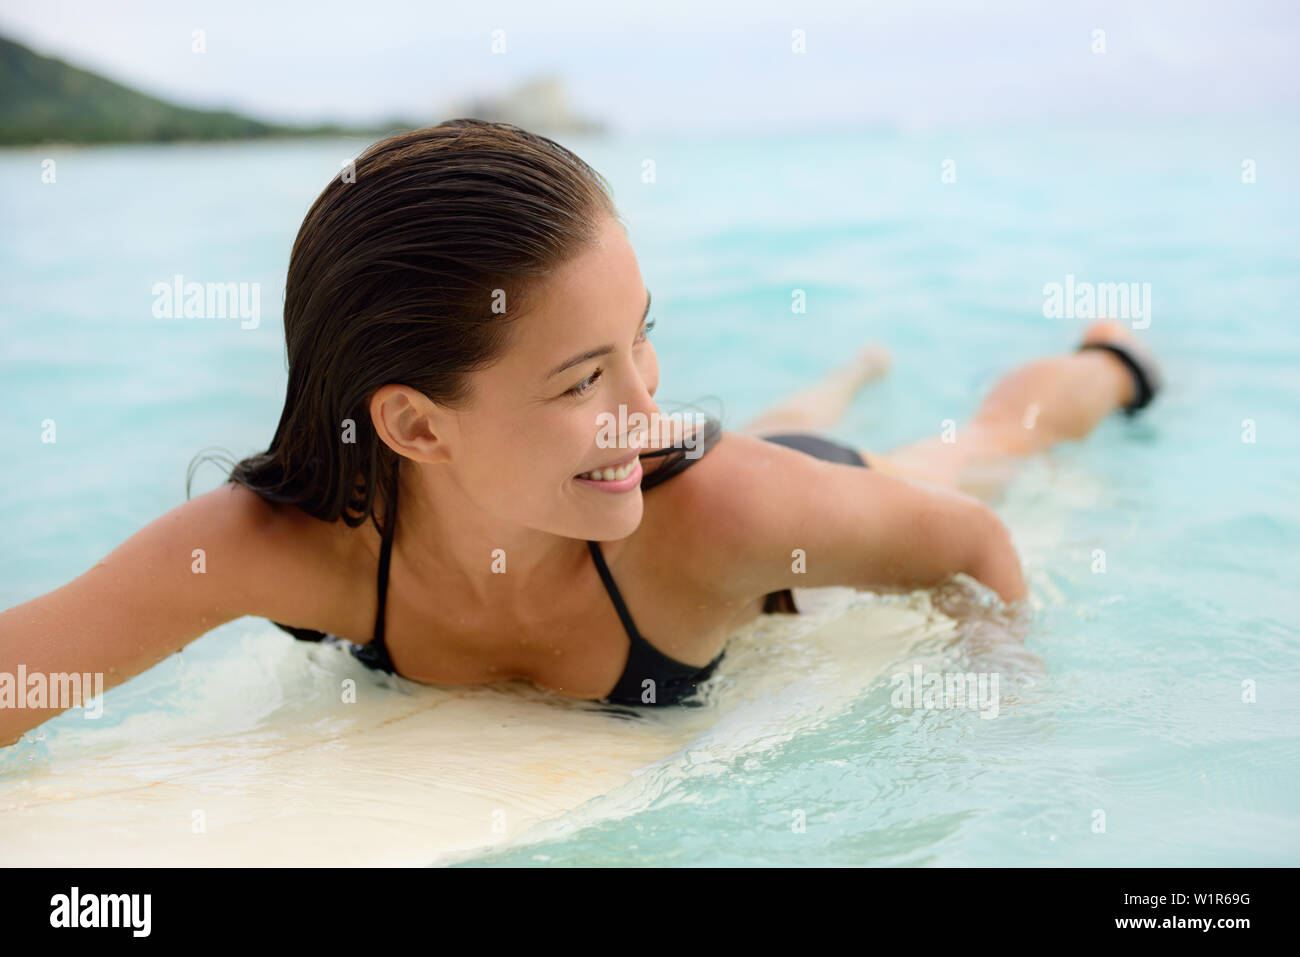 Surfing surfer girl paddle for surf on surfboard. Female bikini woman living healthy active water sports lifestyle on Hawaiian beach. Asian Caucasian model on Waikiki Beach, Oahu, Hawaii. - Stock Image